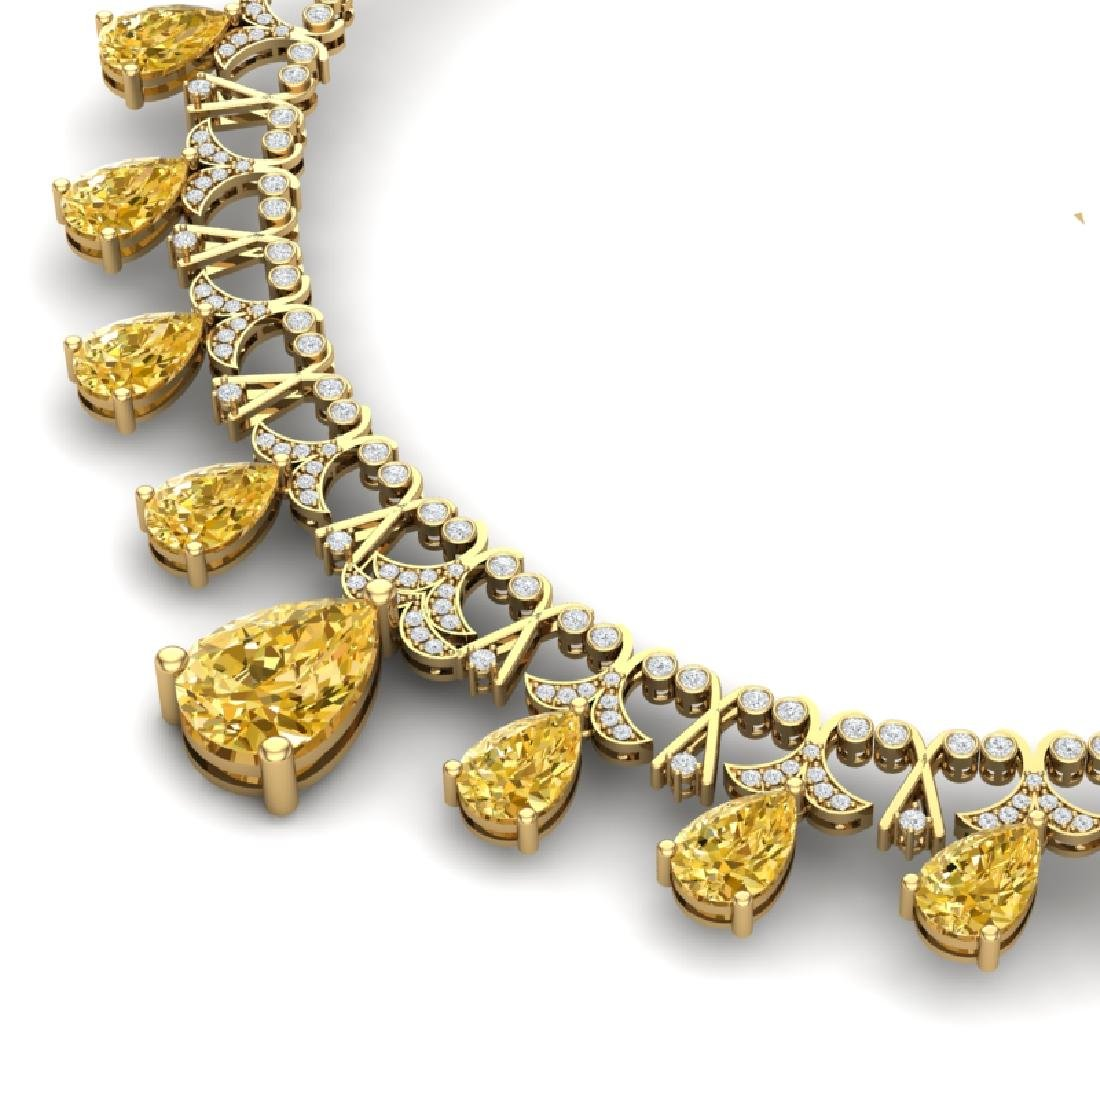 55.49 CTW Royalty Canary Citrine & VS Diamond Necklace - 2